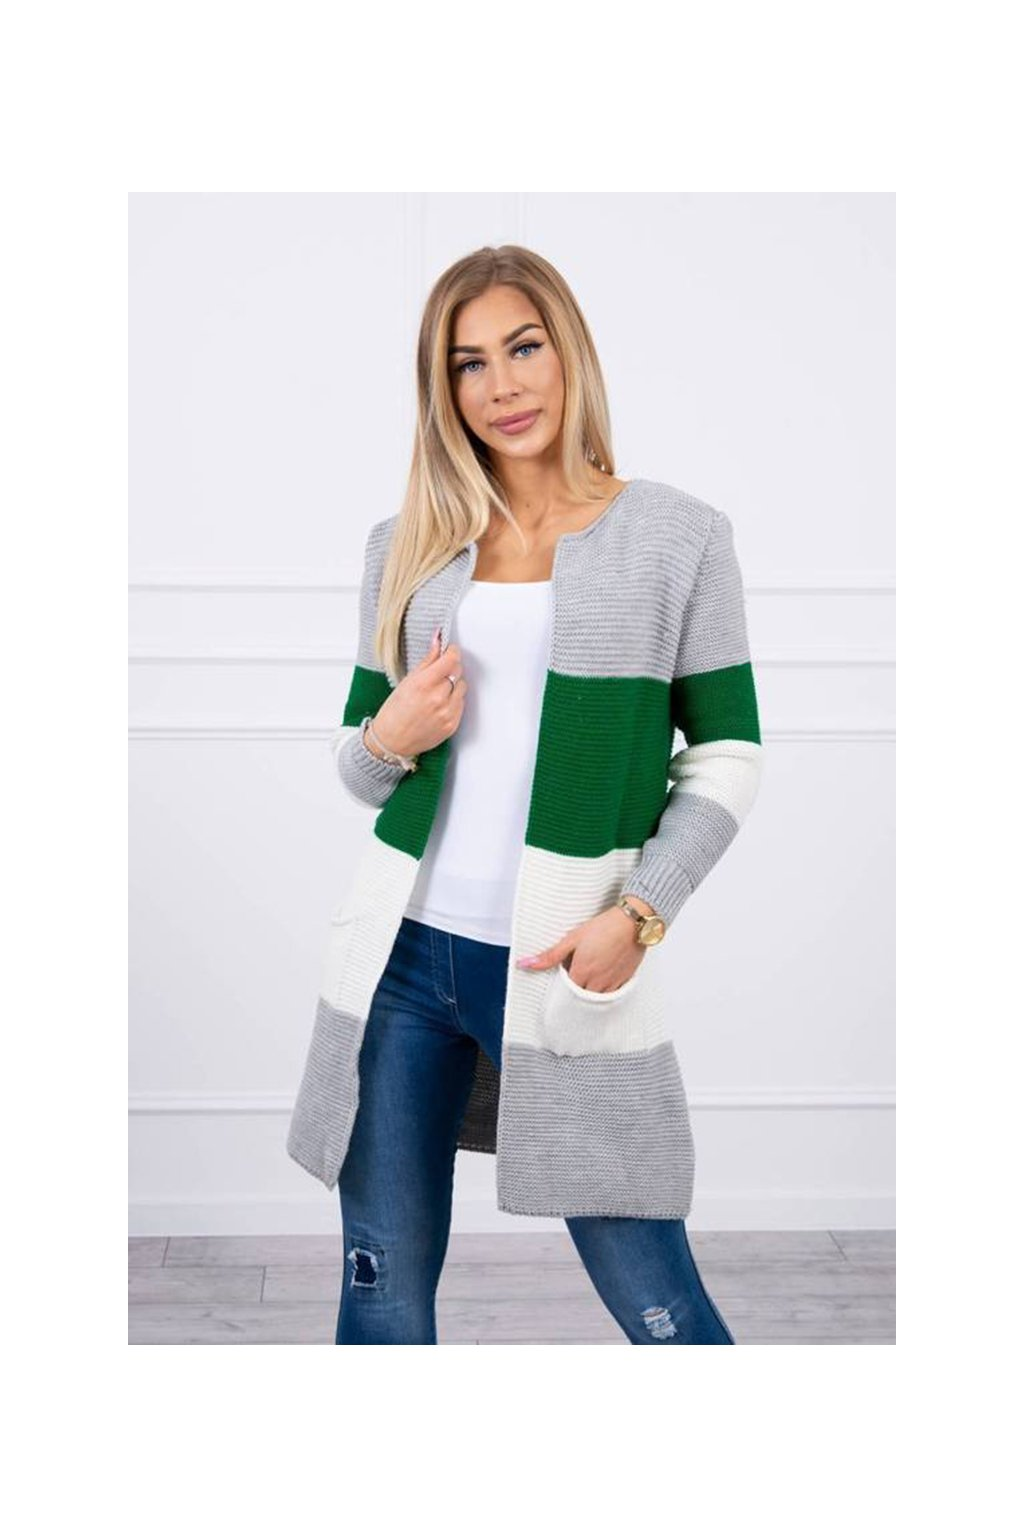 eng pm Sweater Cardigan in the straps gray green 19602 4